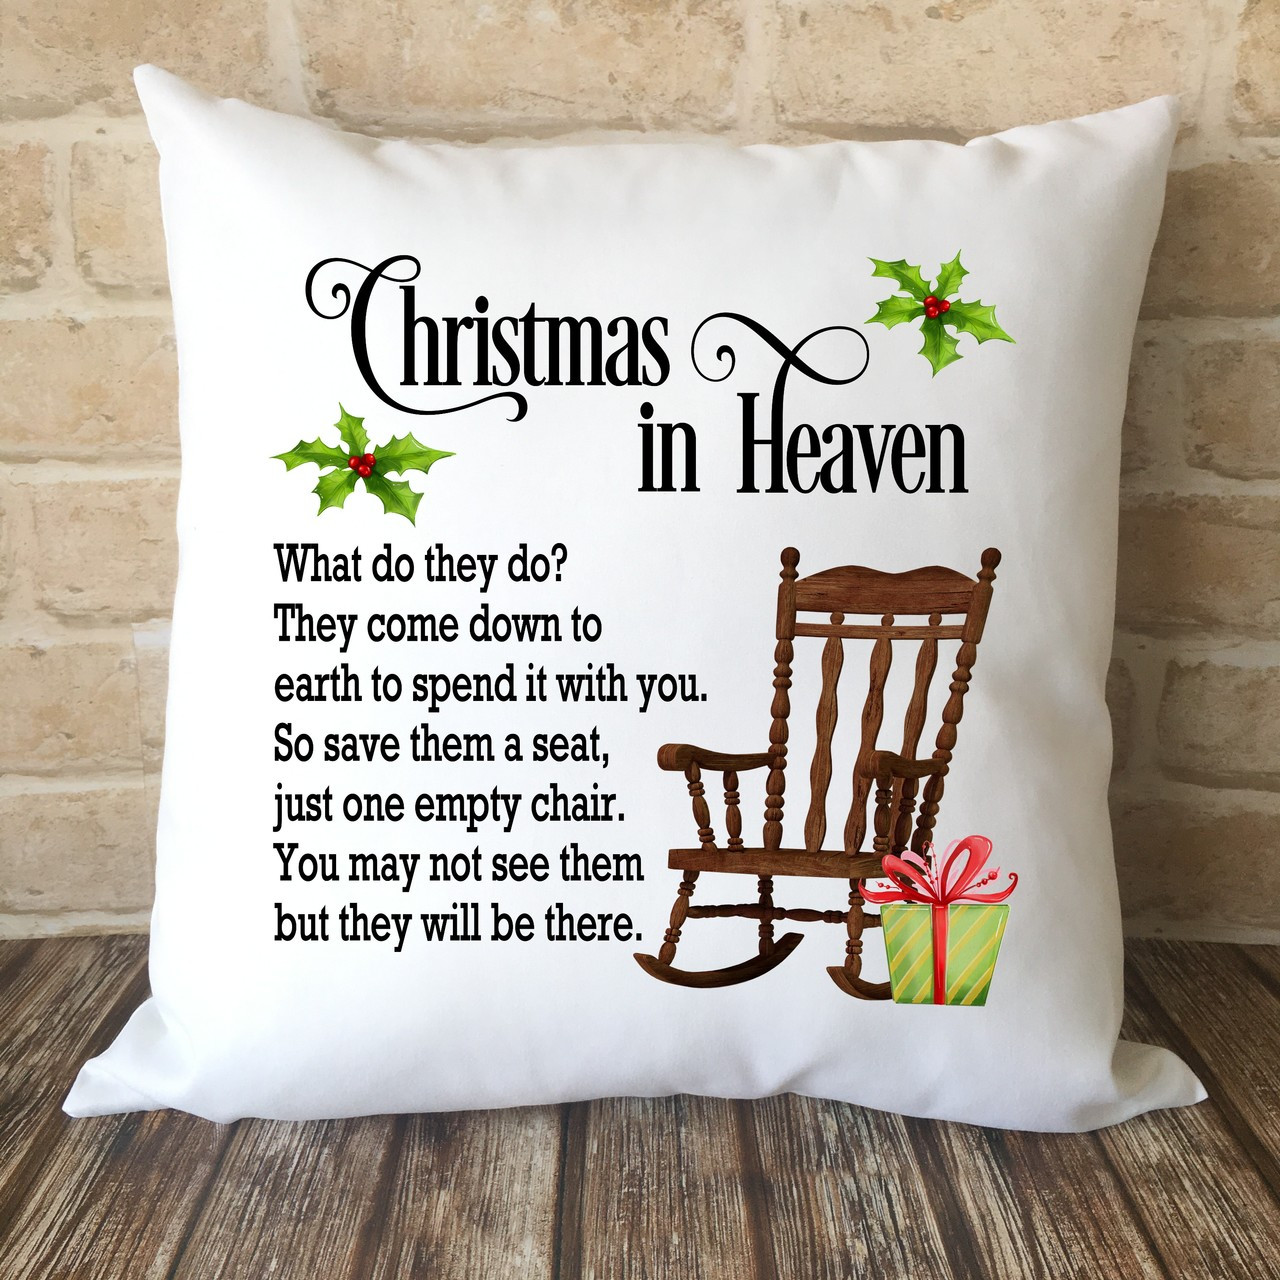 Christmas In Heaven.Christmas In Heaven Cushion Cover